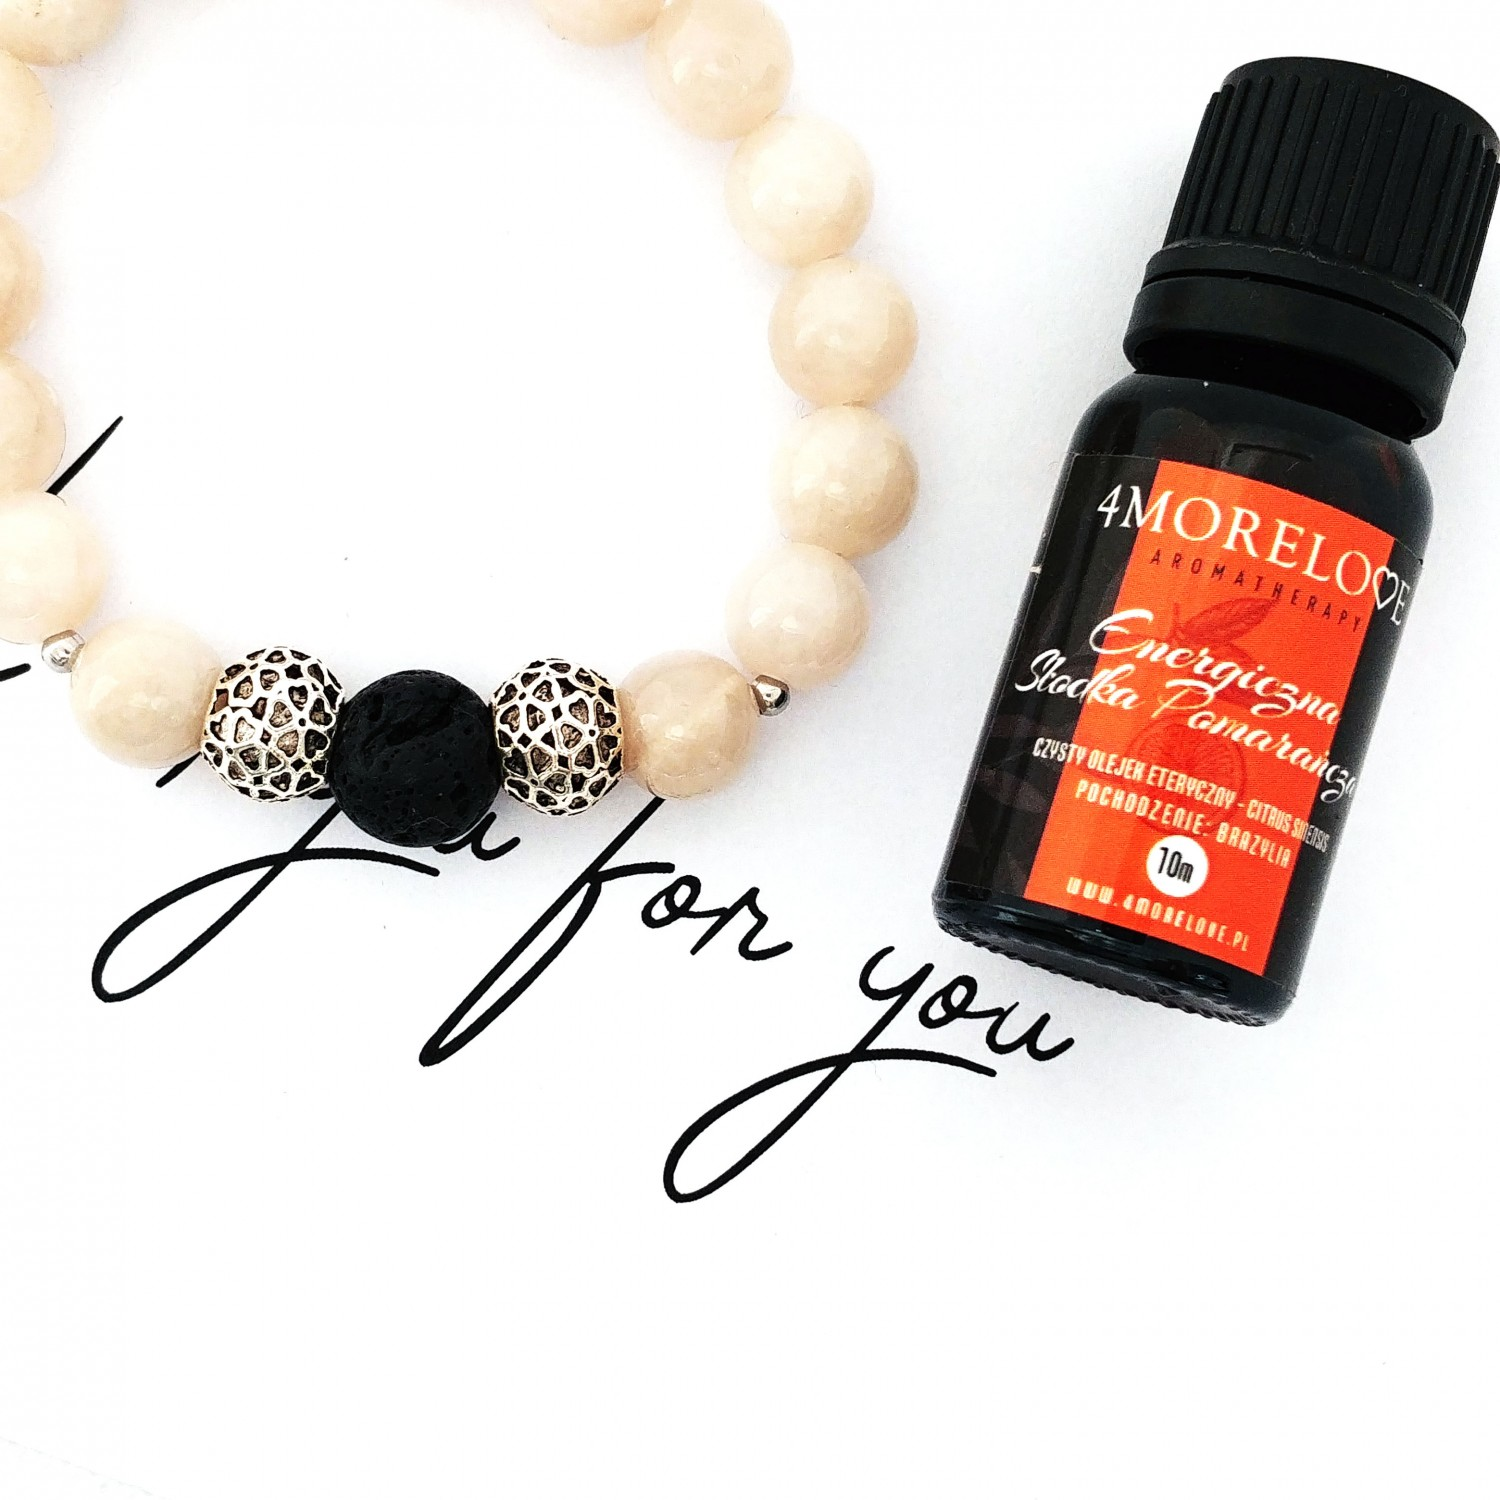 Bransoletka handmade do aromaterapii 4morelove Work On You For You